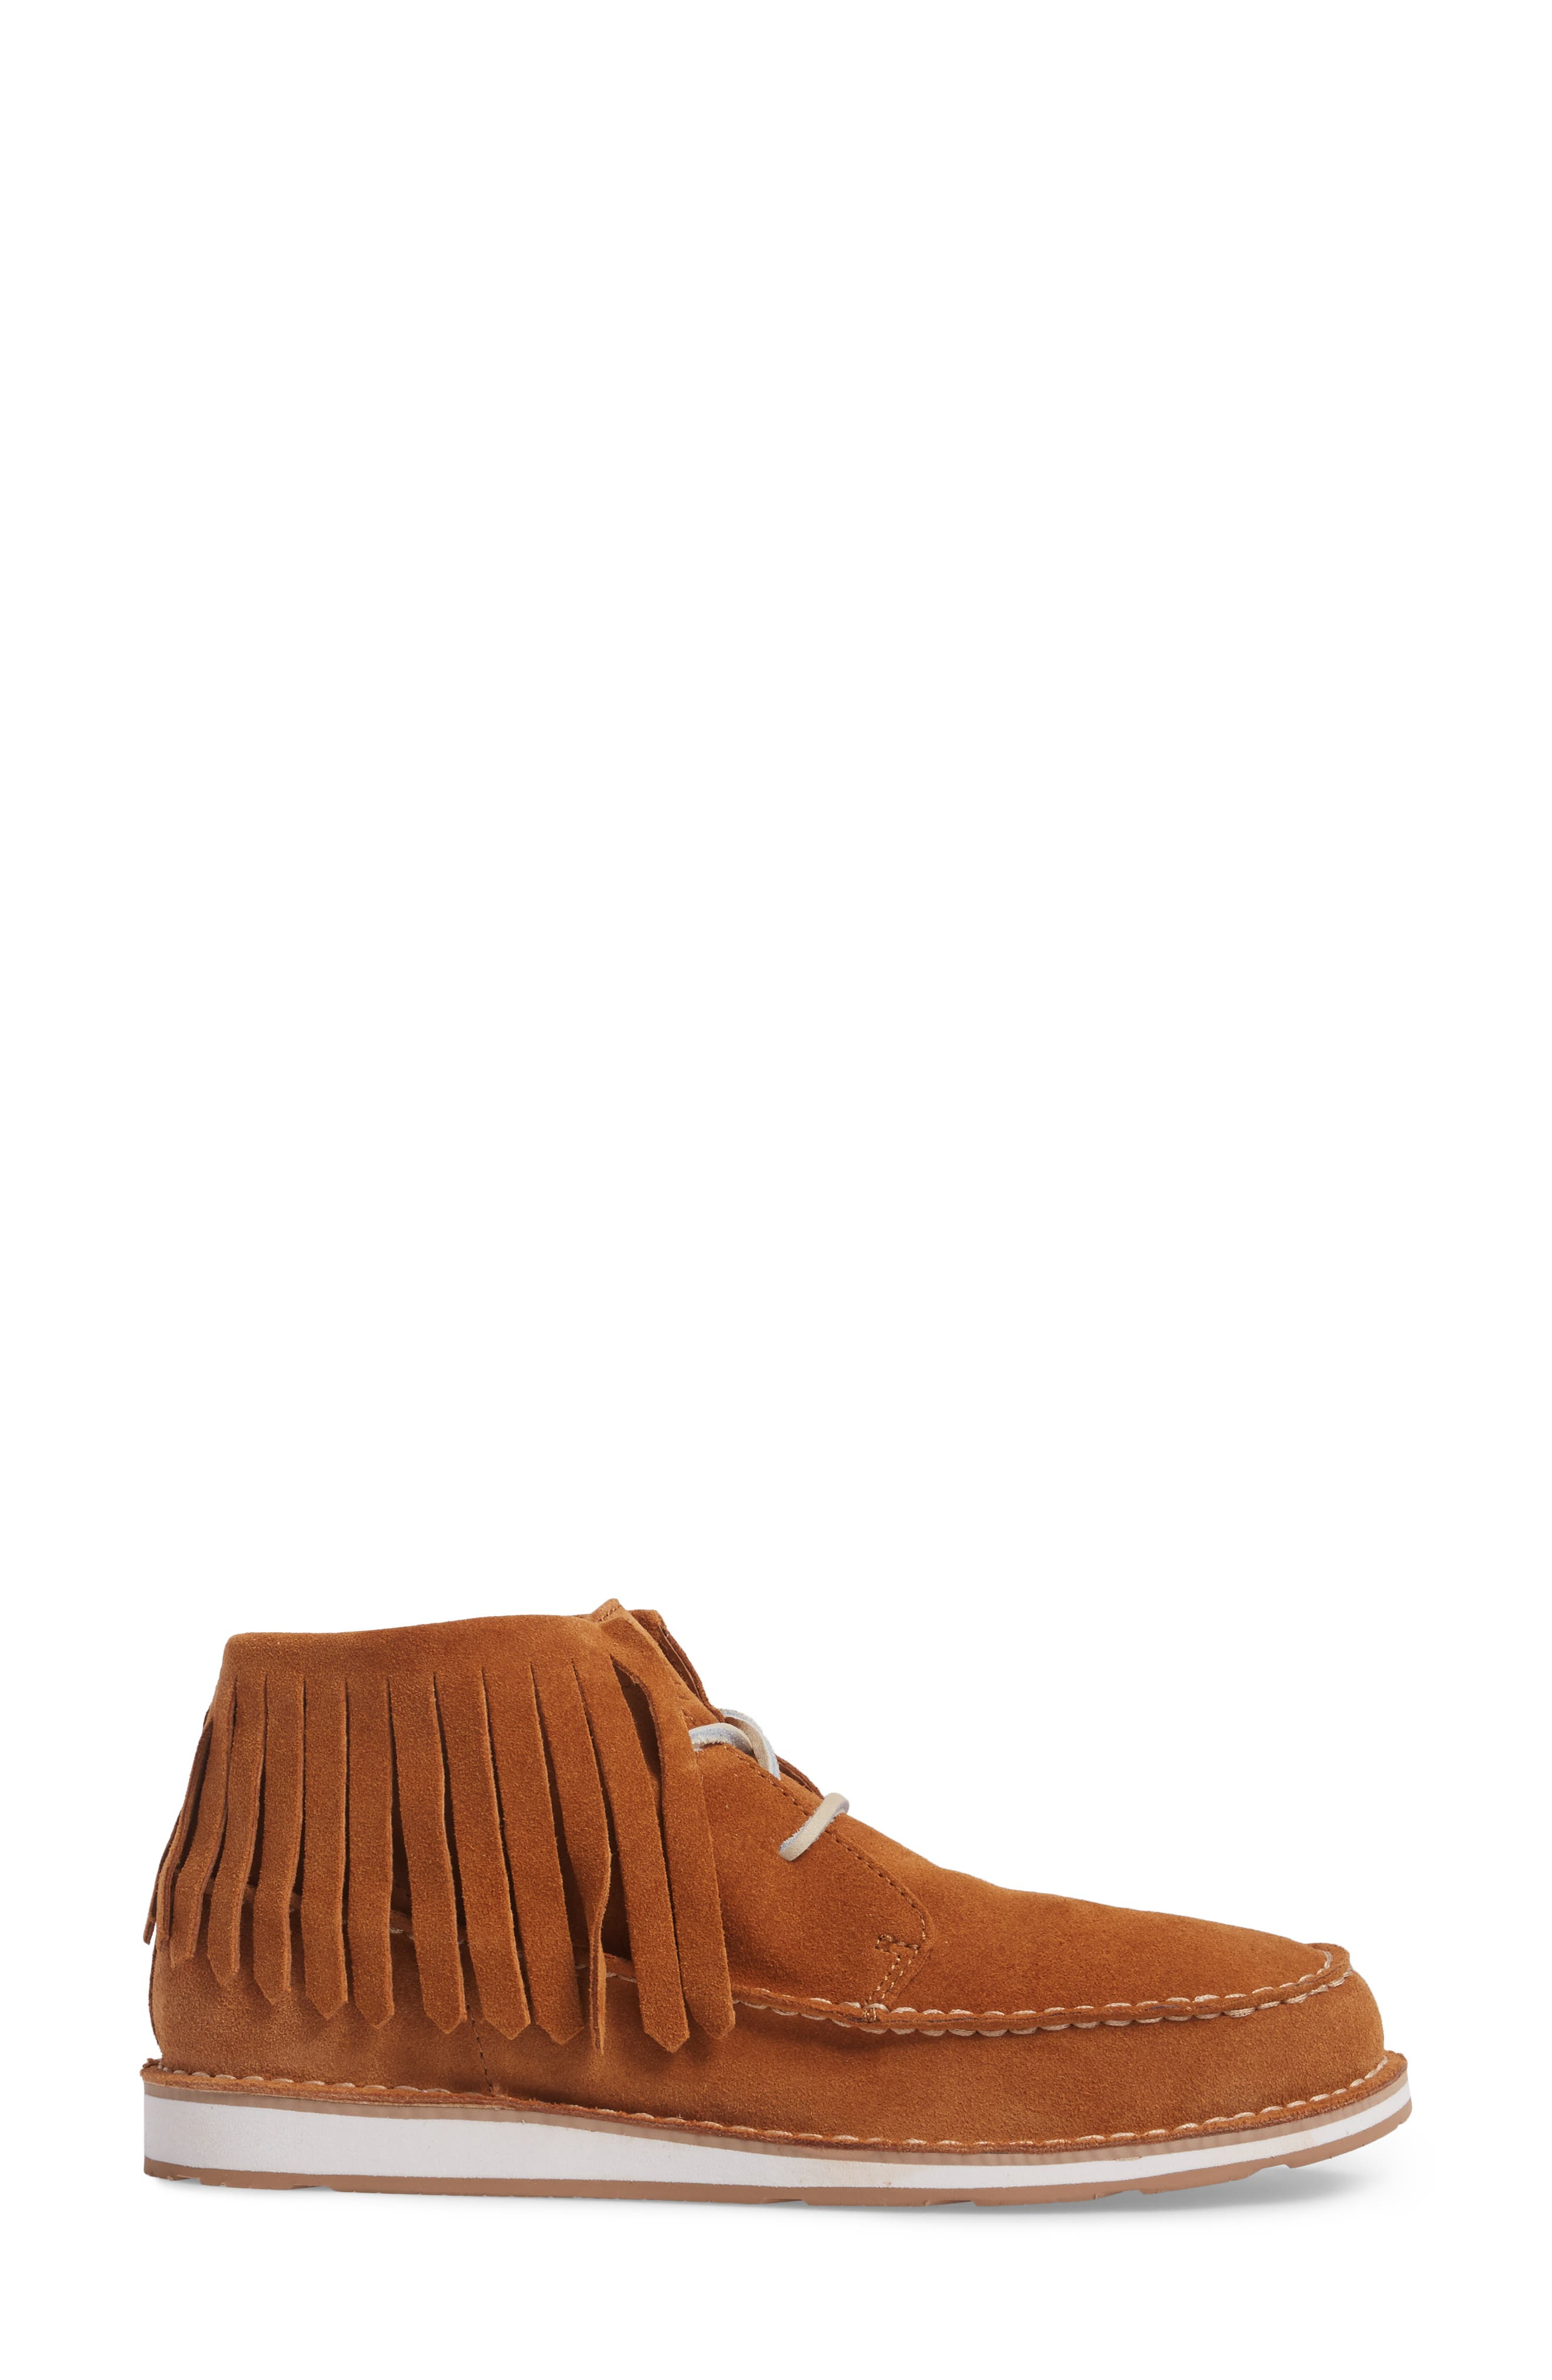 Alternate Image 3  - Ariat Cruiser Fringe Chukka Boot (Women)